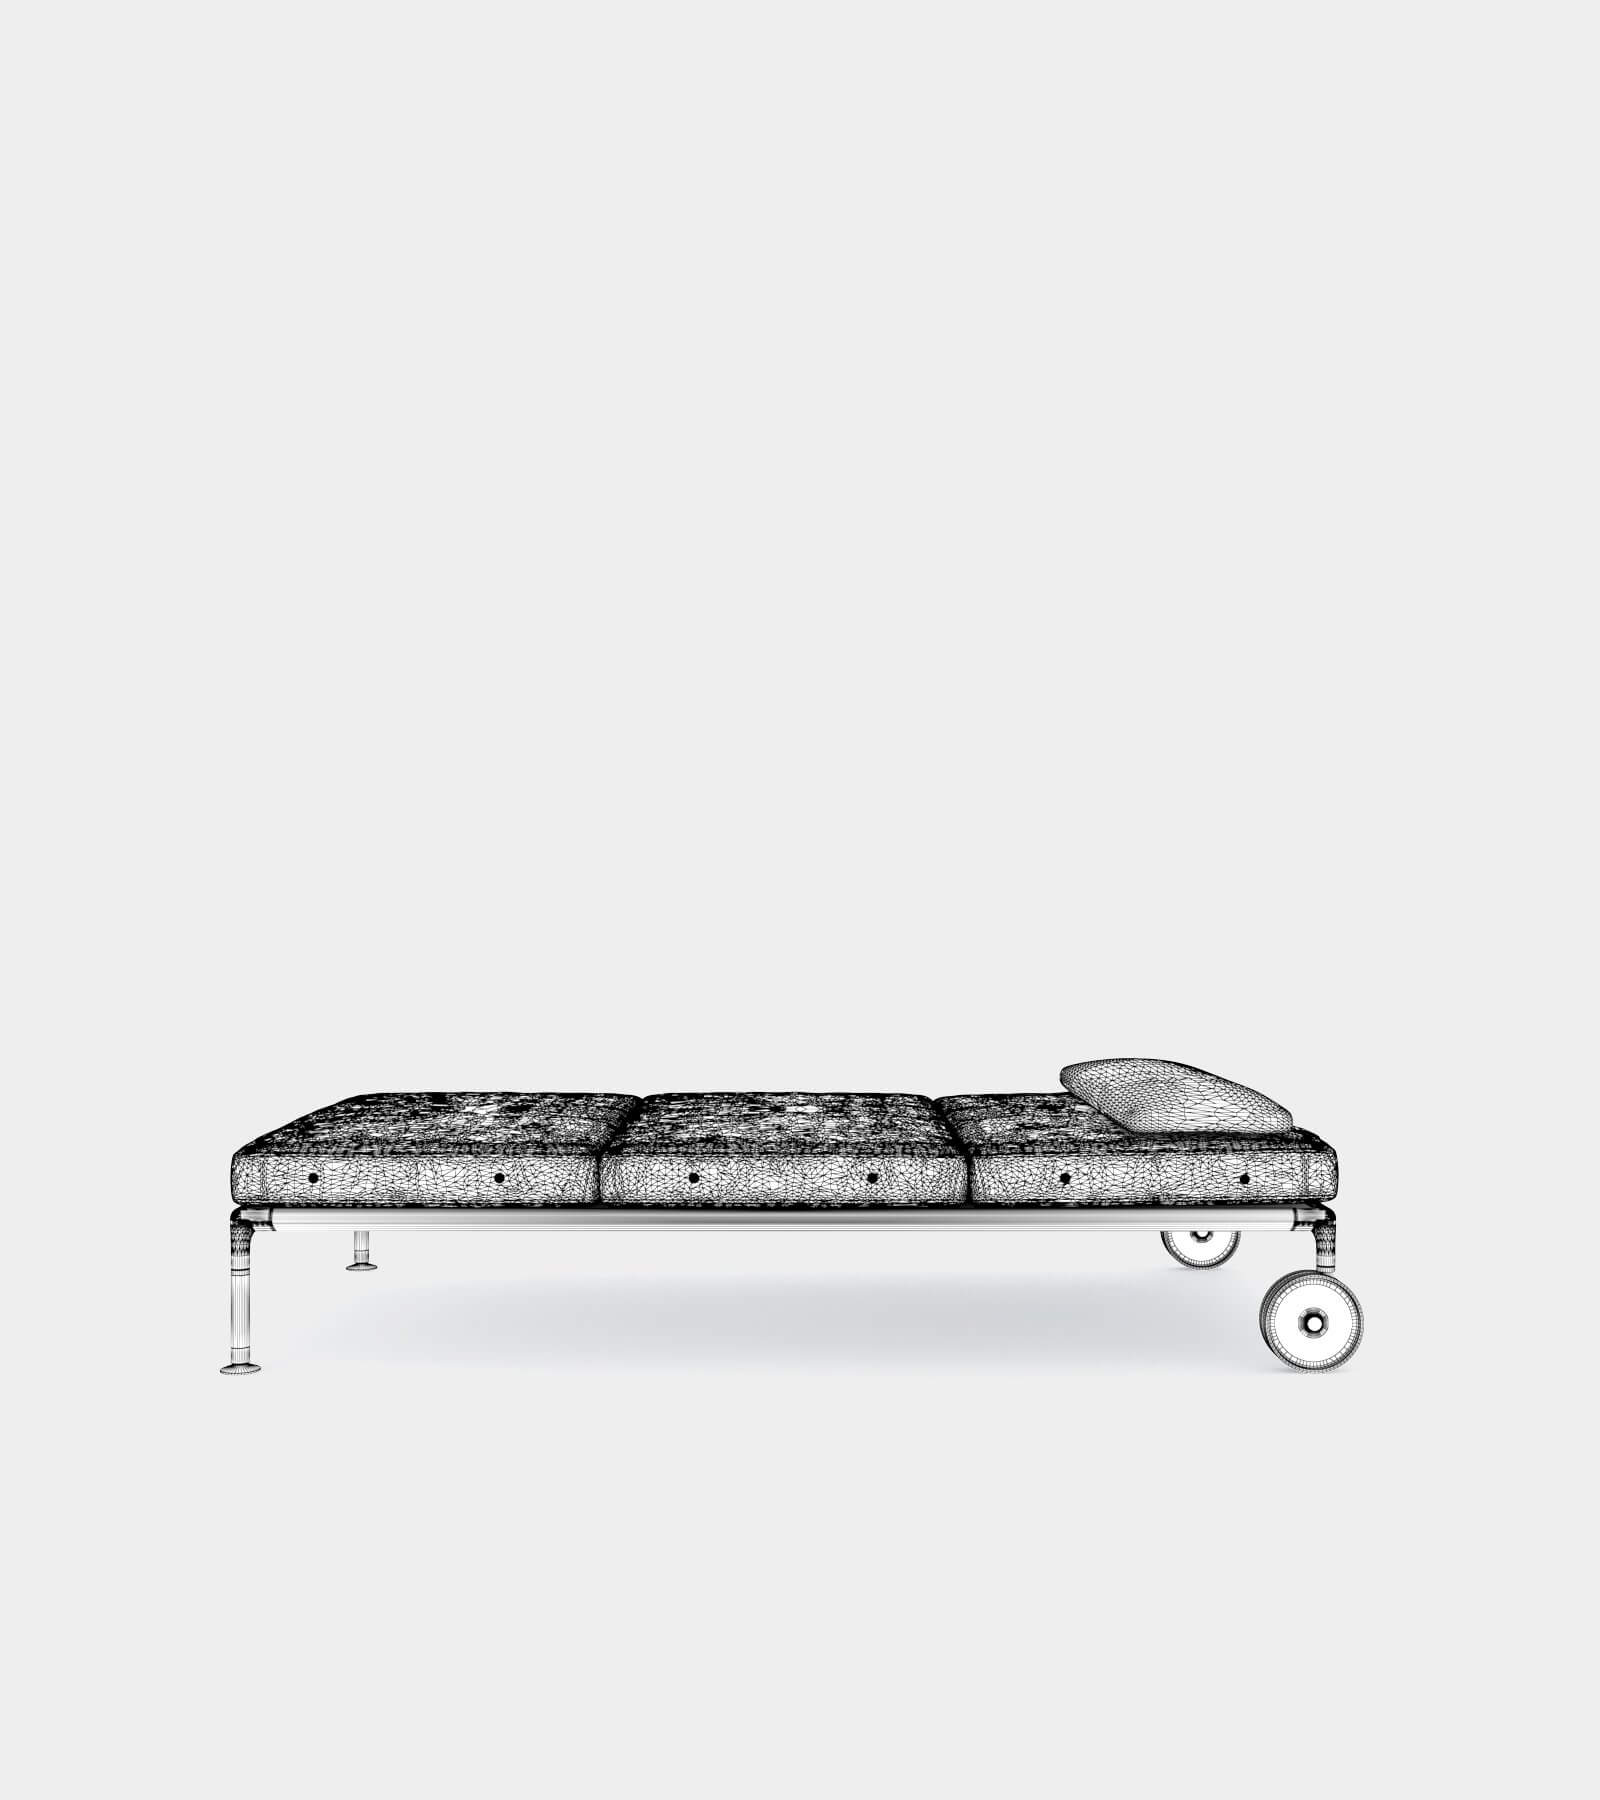 Outdoor chaise longue with wheels-wire-1 3D Model